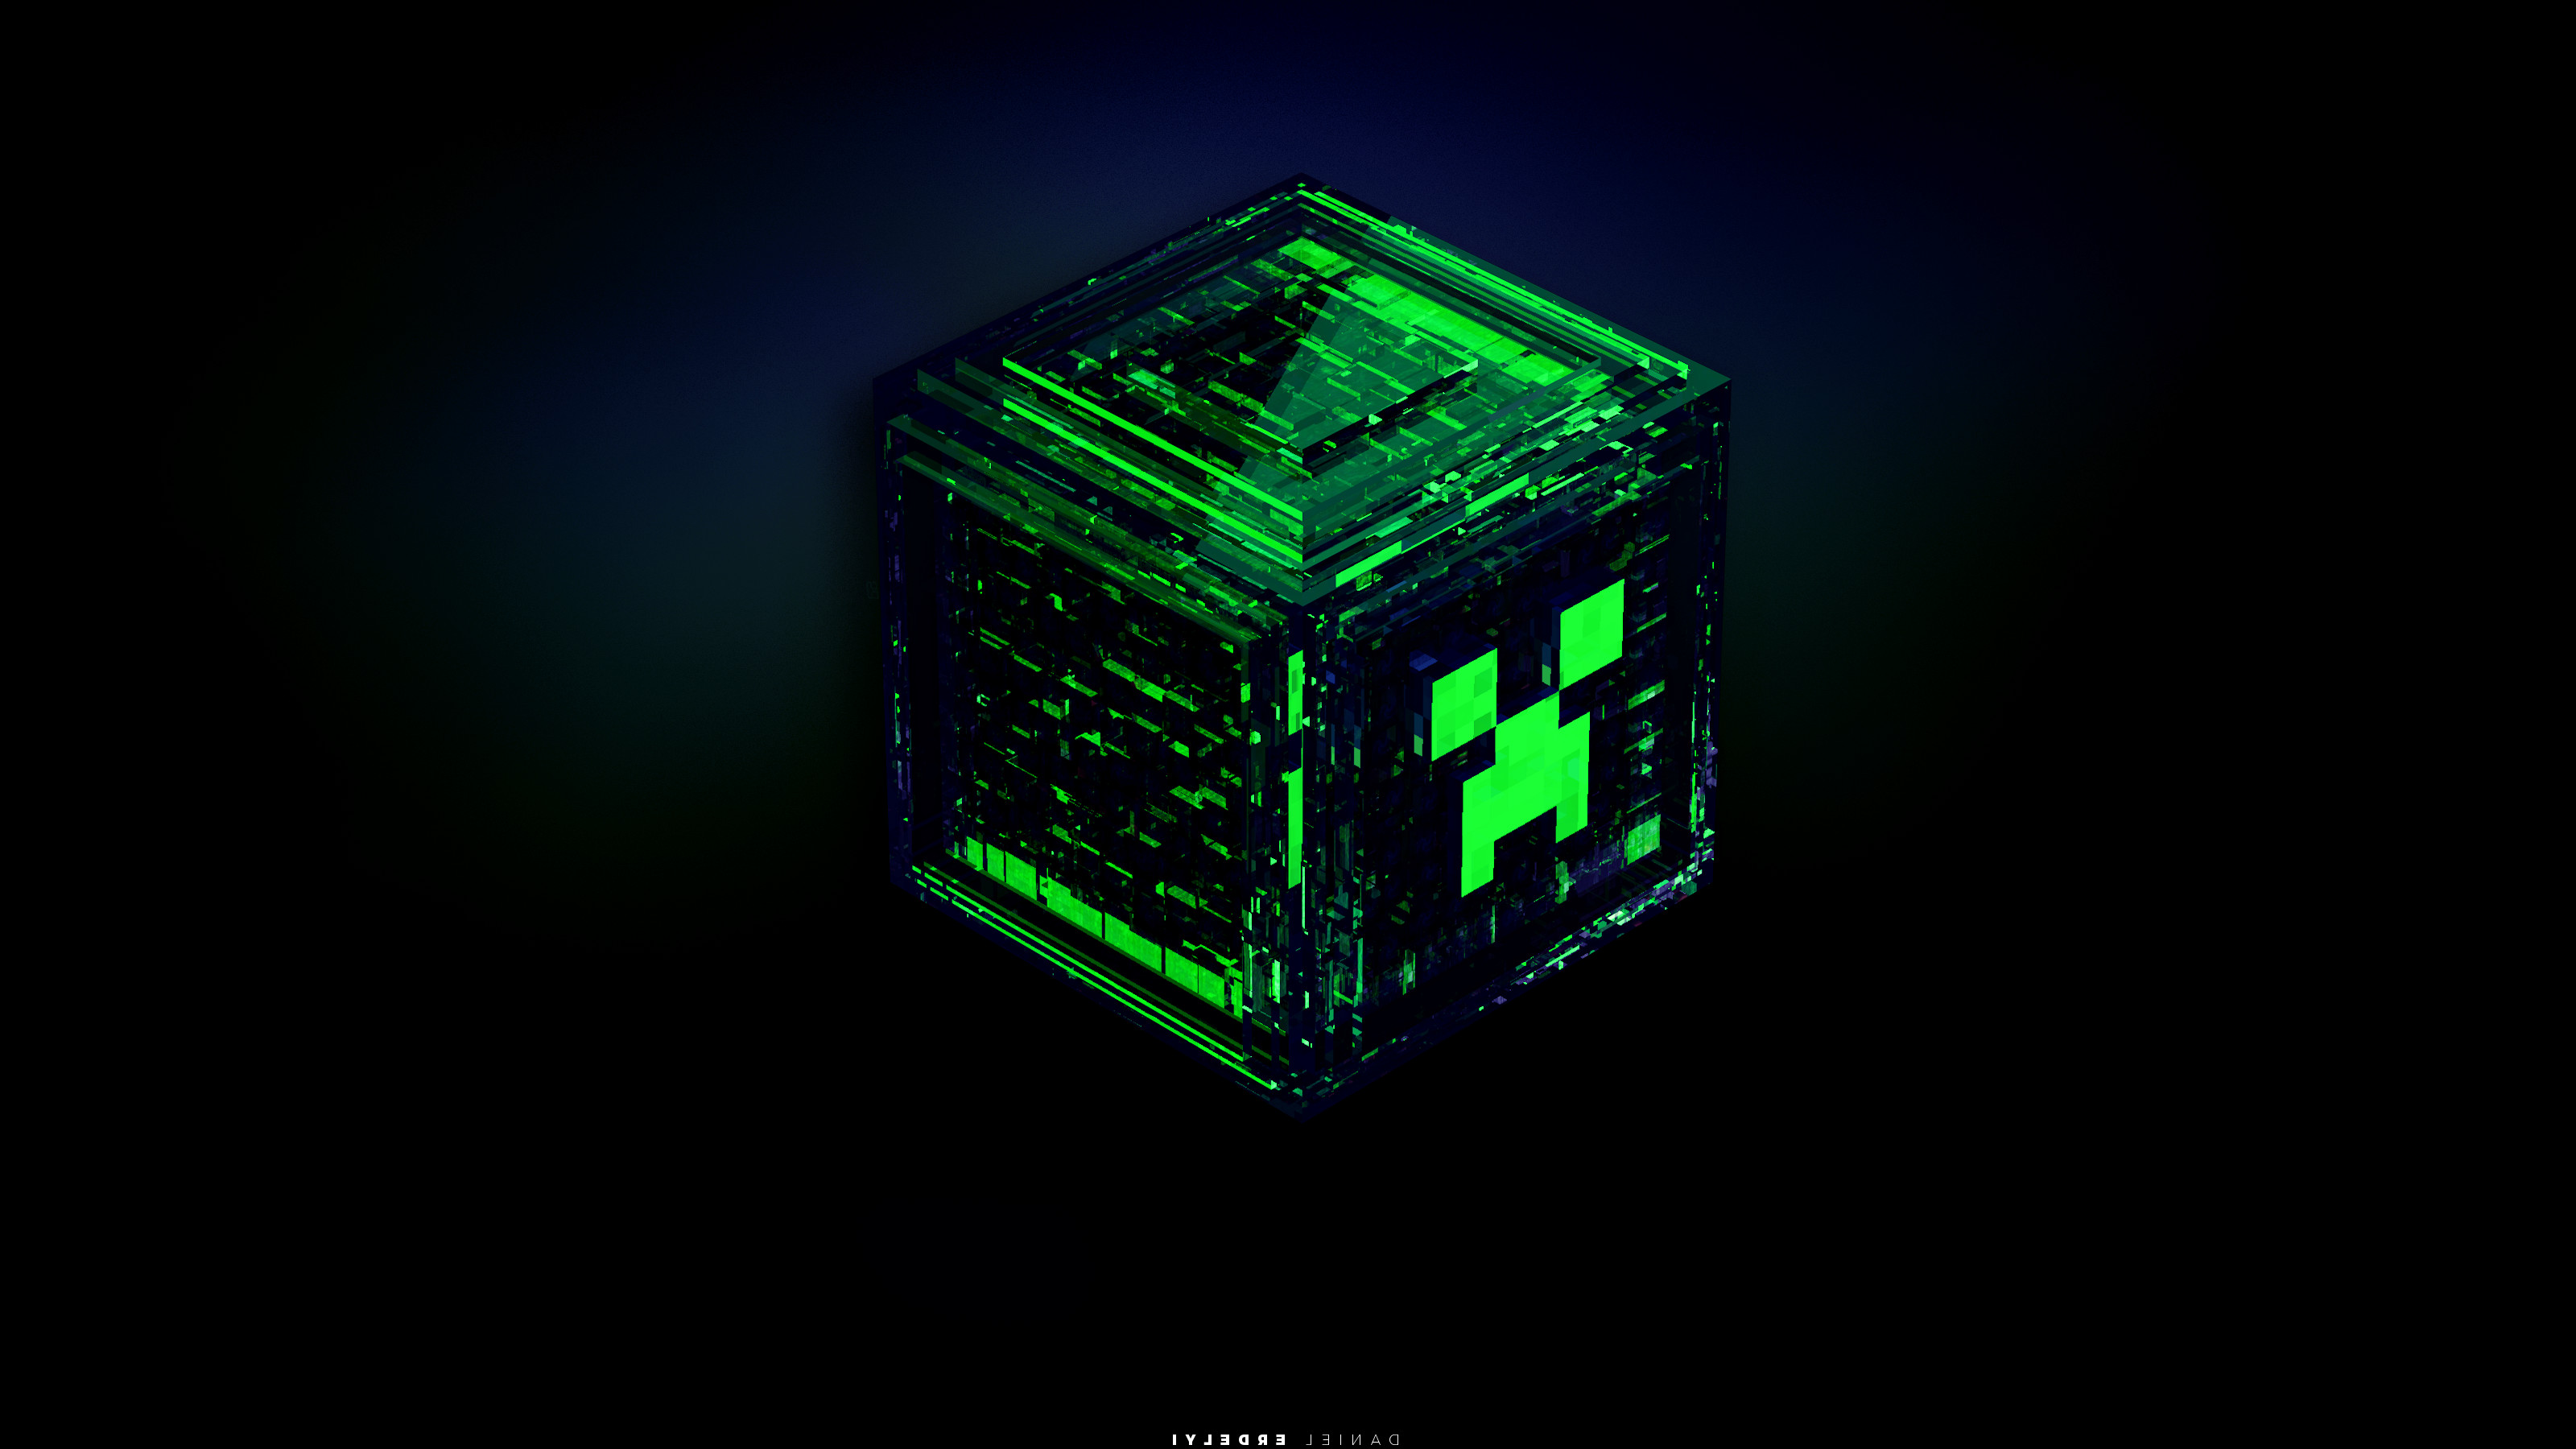 3200x1800 creeper Minecraft Green Wallpapers HD Desktop and